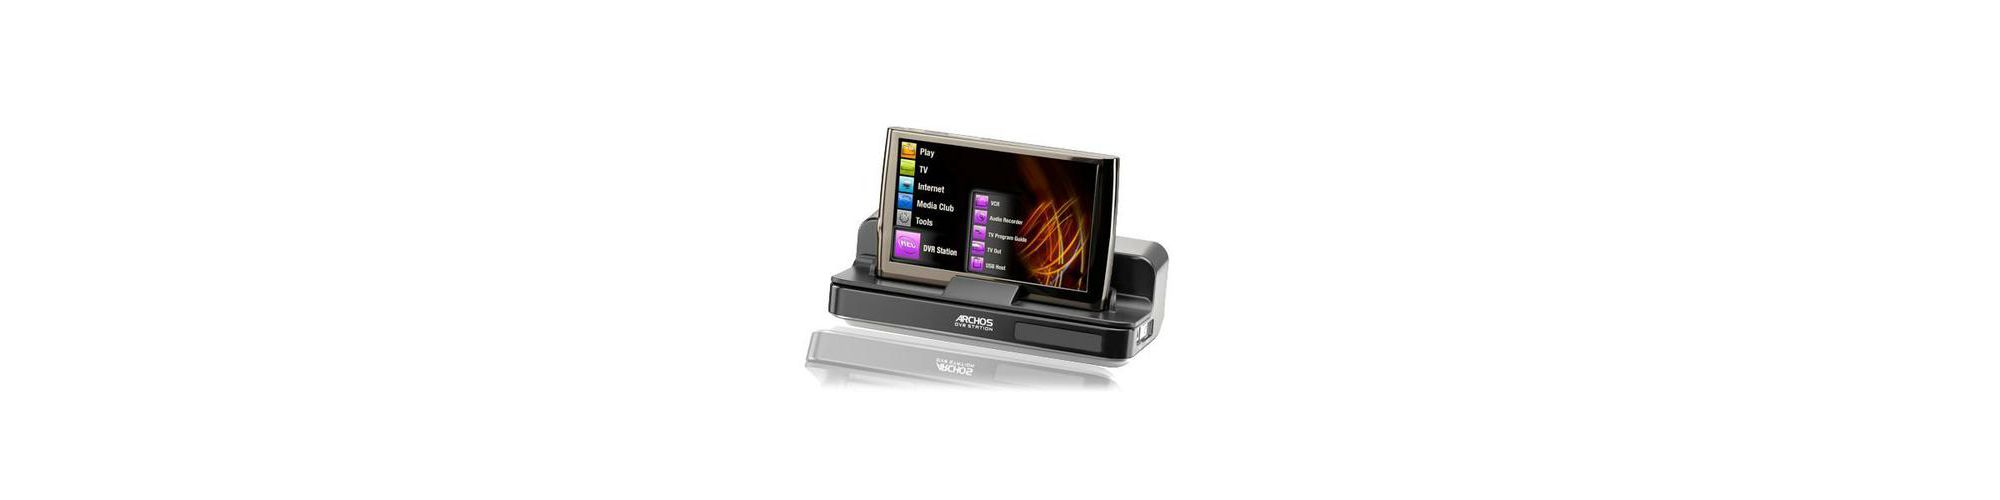 Archos DVD Station for Archos 5 Internet Tablet